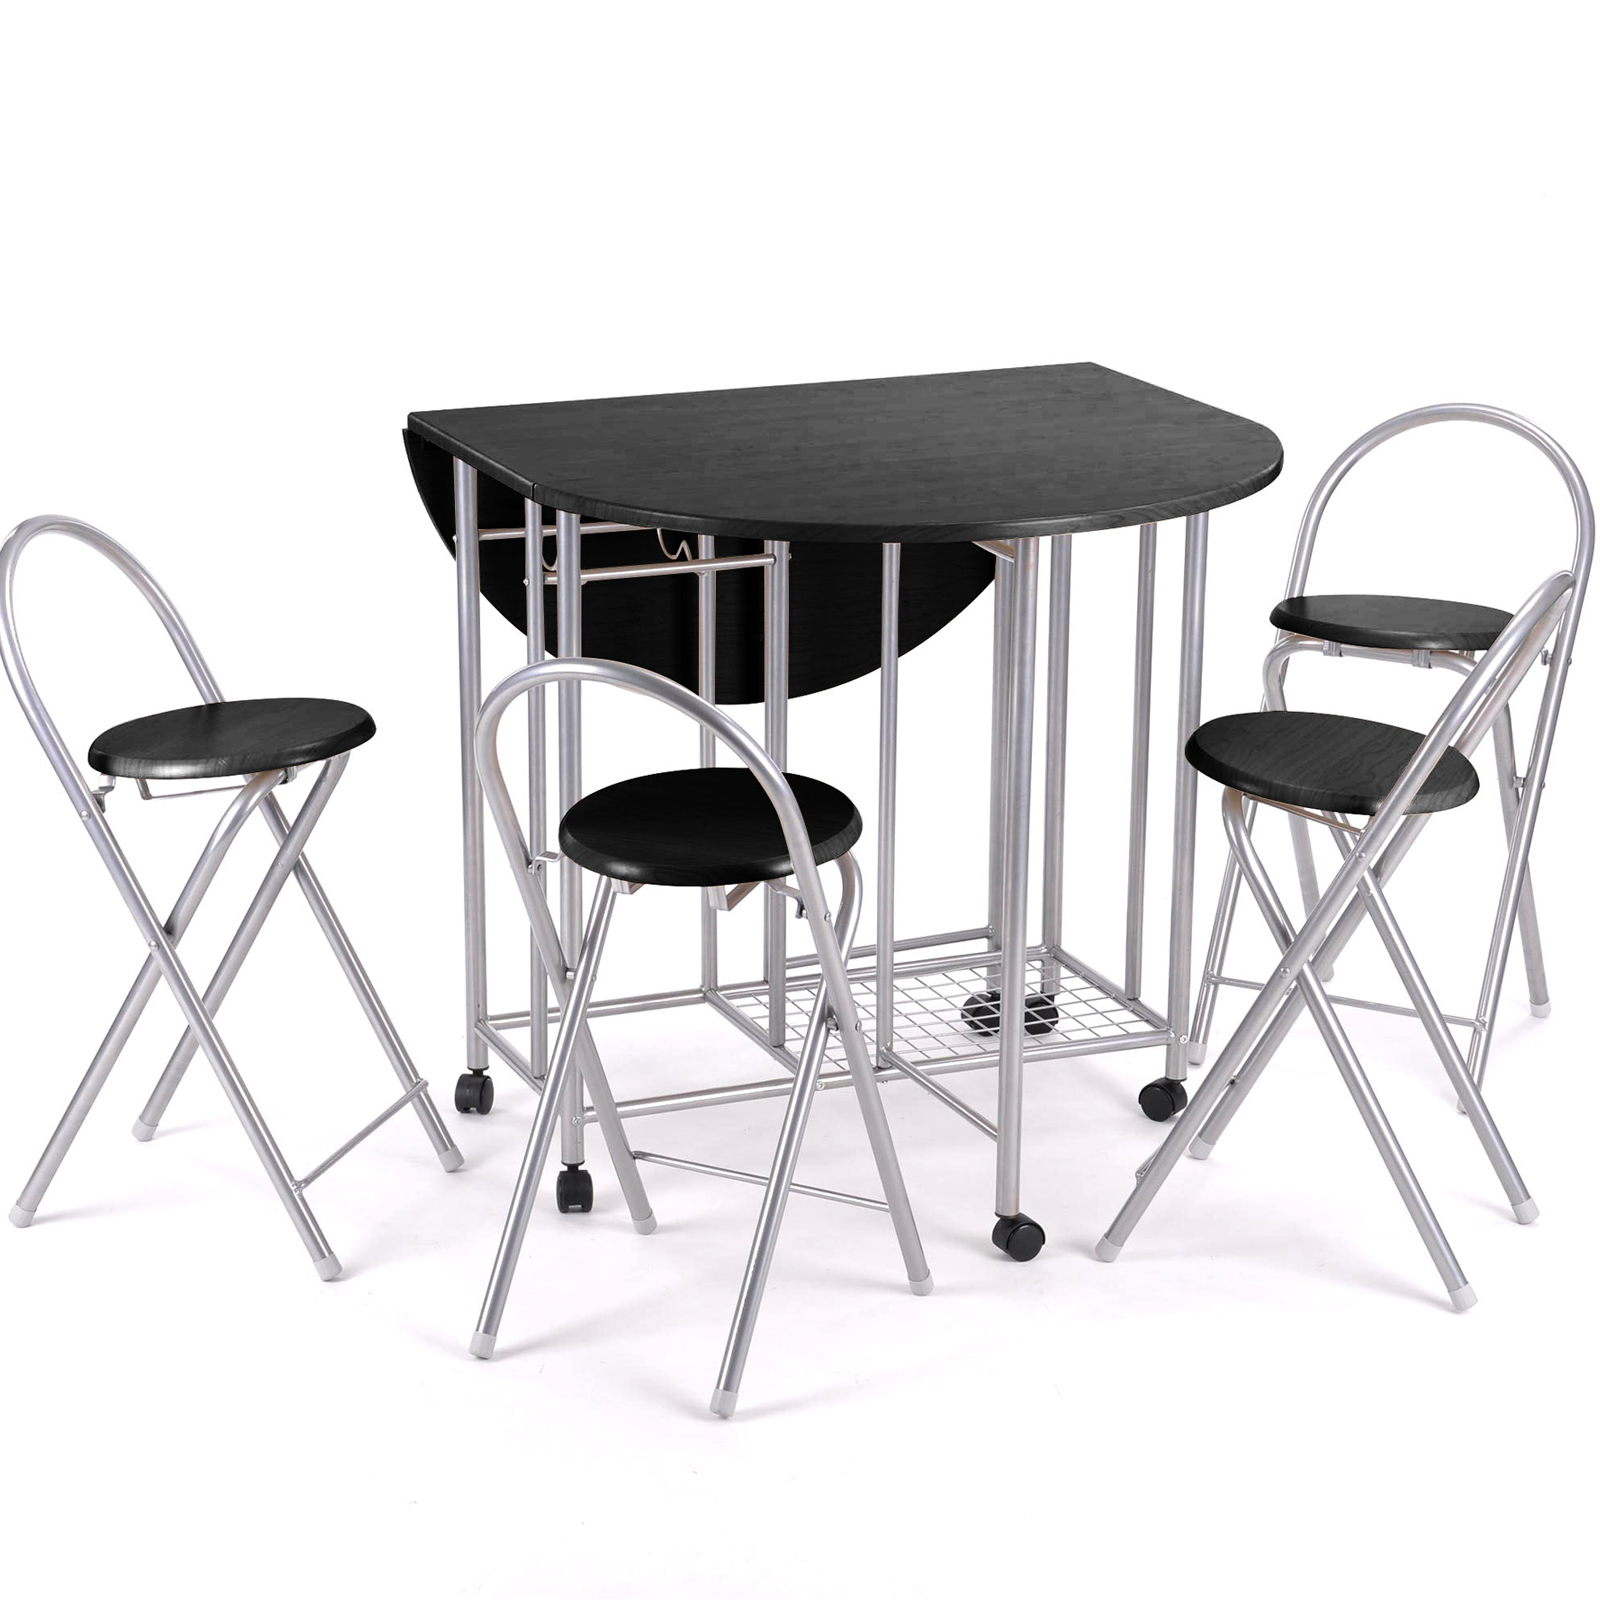 Butterfly Folding Table Ikea ~ Folding Folding Dining Table And Chairs Set Interesting Black Kitchen